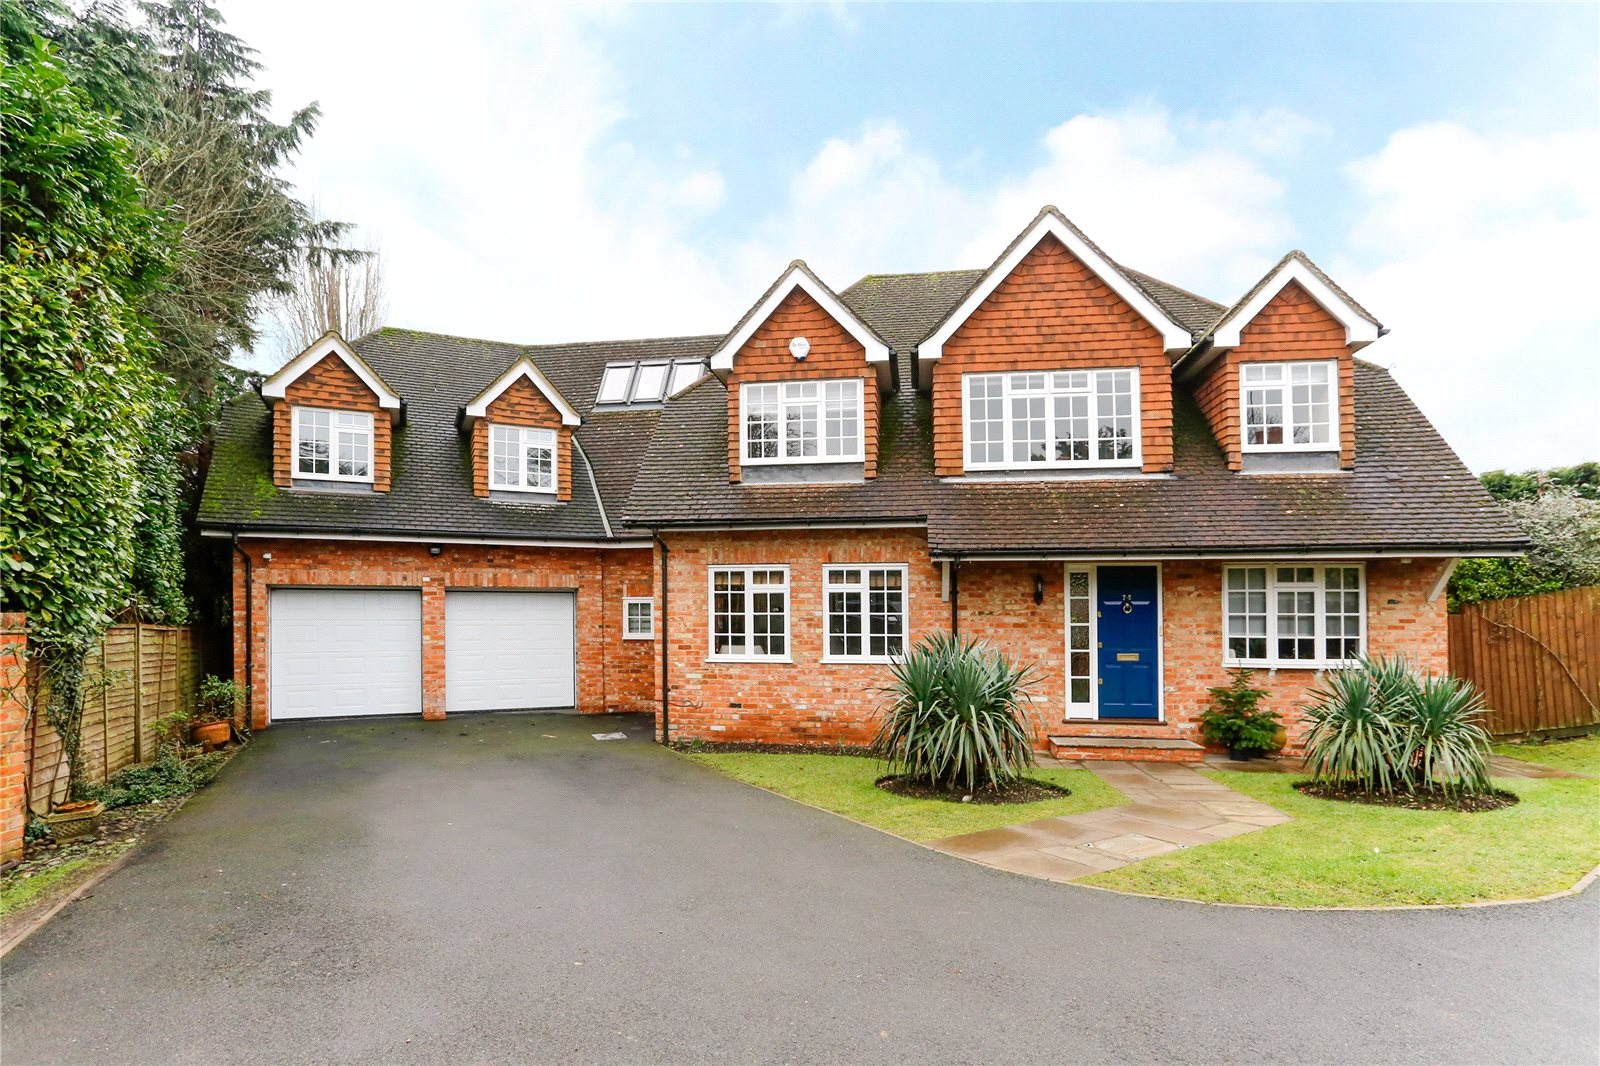 Частный дом для того Продажа на Hill Rise, Chalfont St Peter, Gerrards Cross, Buckinghamshire, SL9 Gerrards Cross, Англия